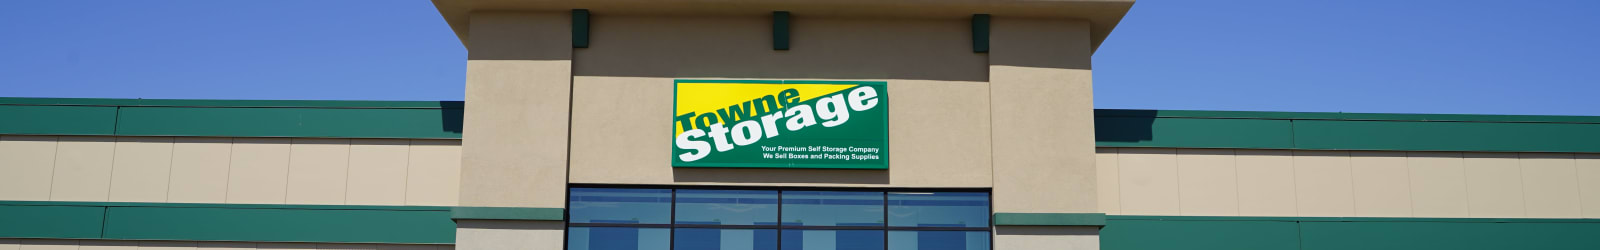 Hours and directions to Towne Storage - Deer Springs in North Las Vegas, Nevada